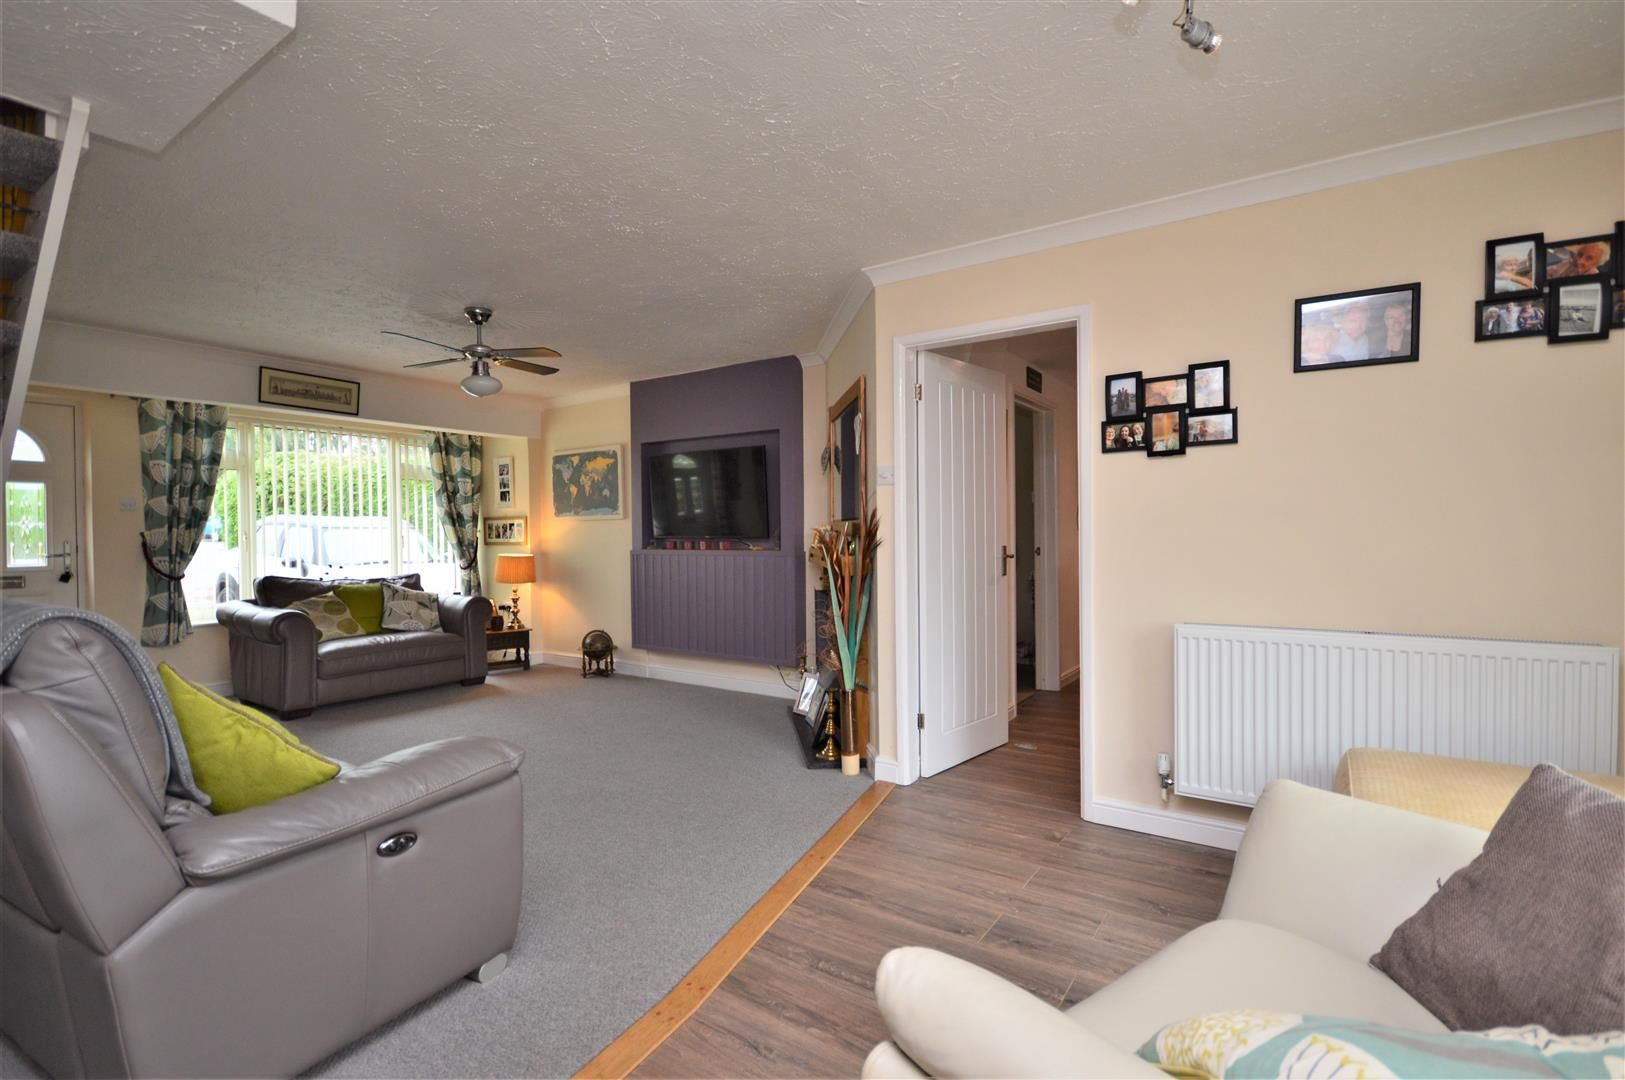 4 bed semi-detached for sale in Clehonger  - Property Image 7